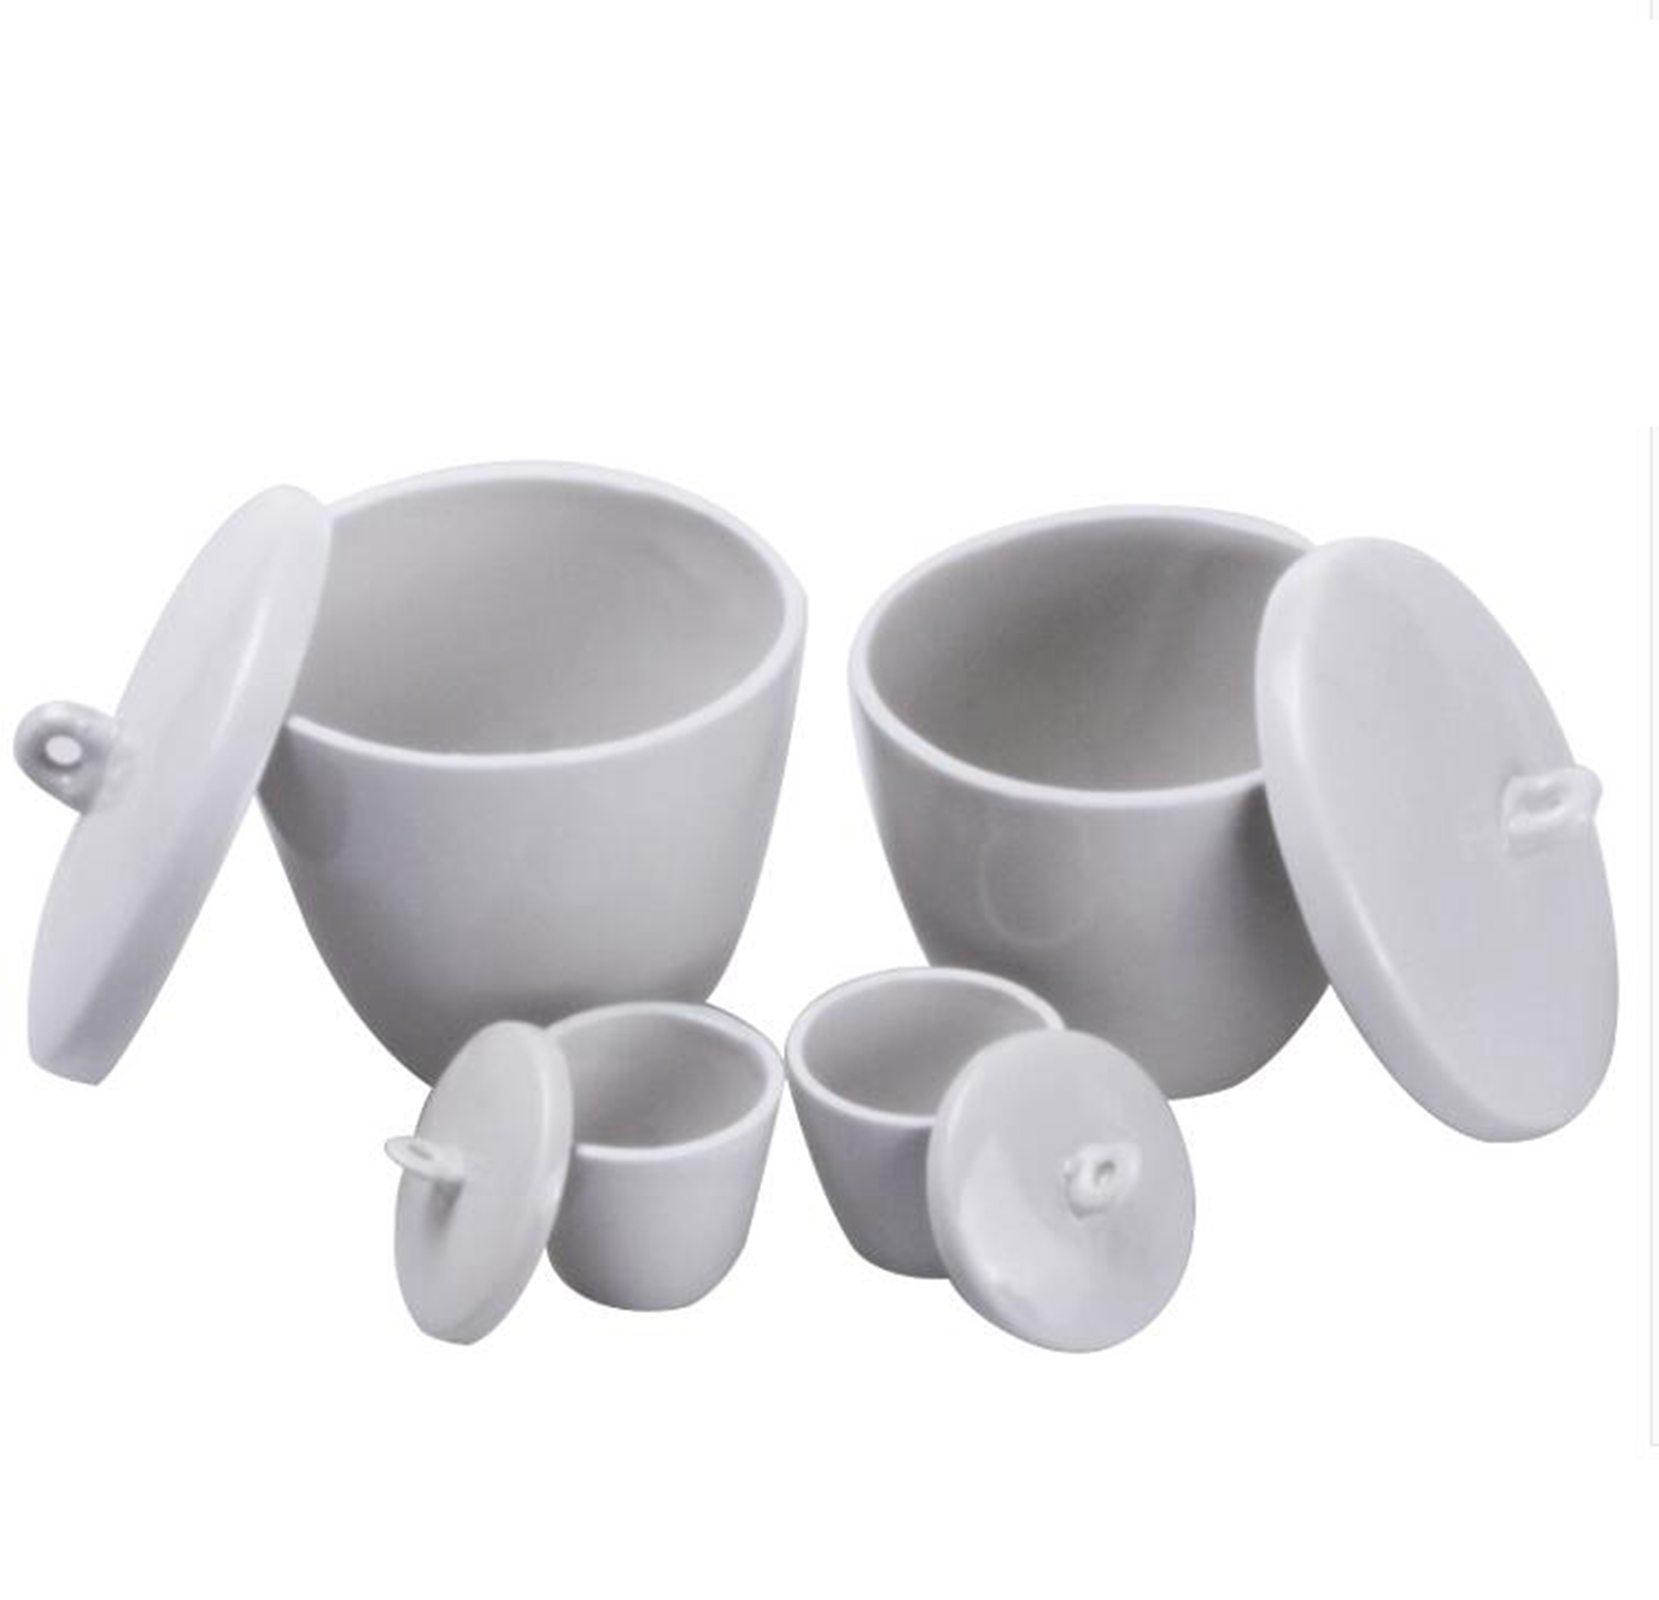 Capacity 10ml 20ml 30ml 50ml 70ml 100ml 150ml 200ml 300ml Ceramic Porcelain Crucible With Cover Lid 1200 Celsius Lab Laboratory